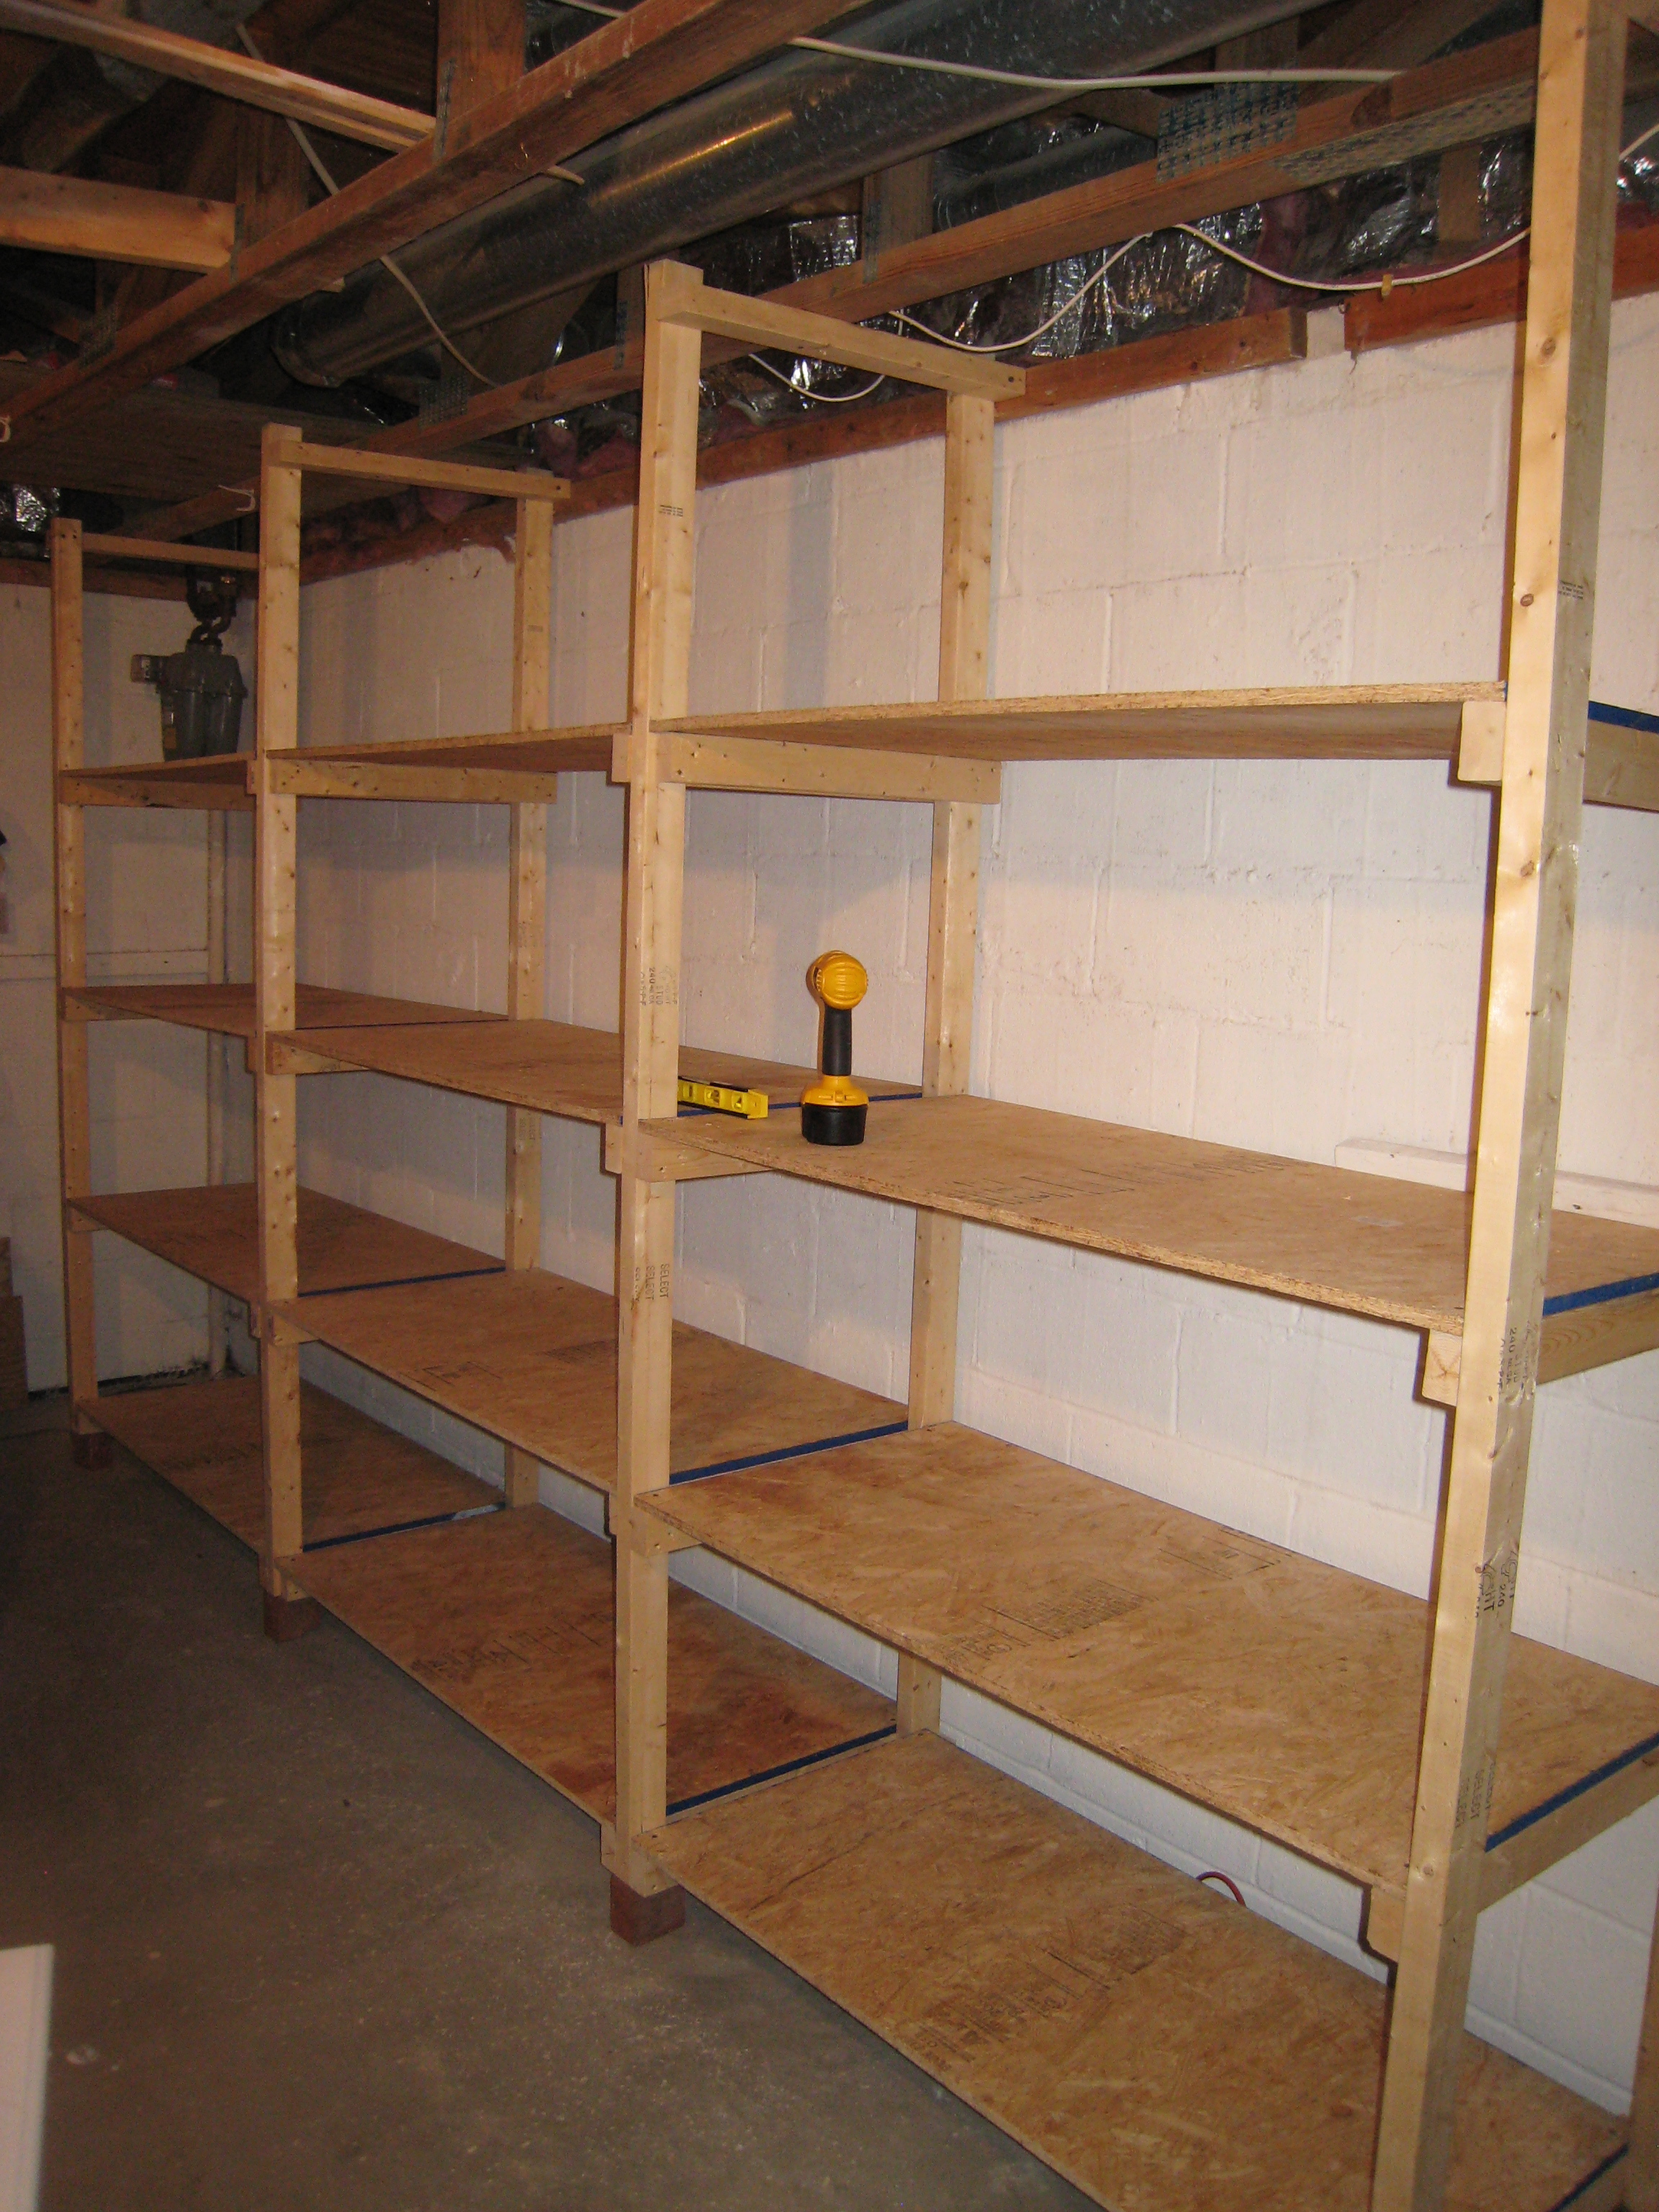 kayak storage rack plans | ehow, Do it yourself: kayak storage ...